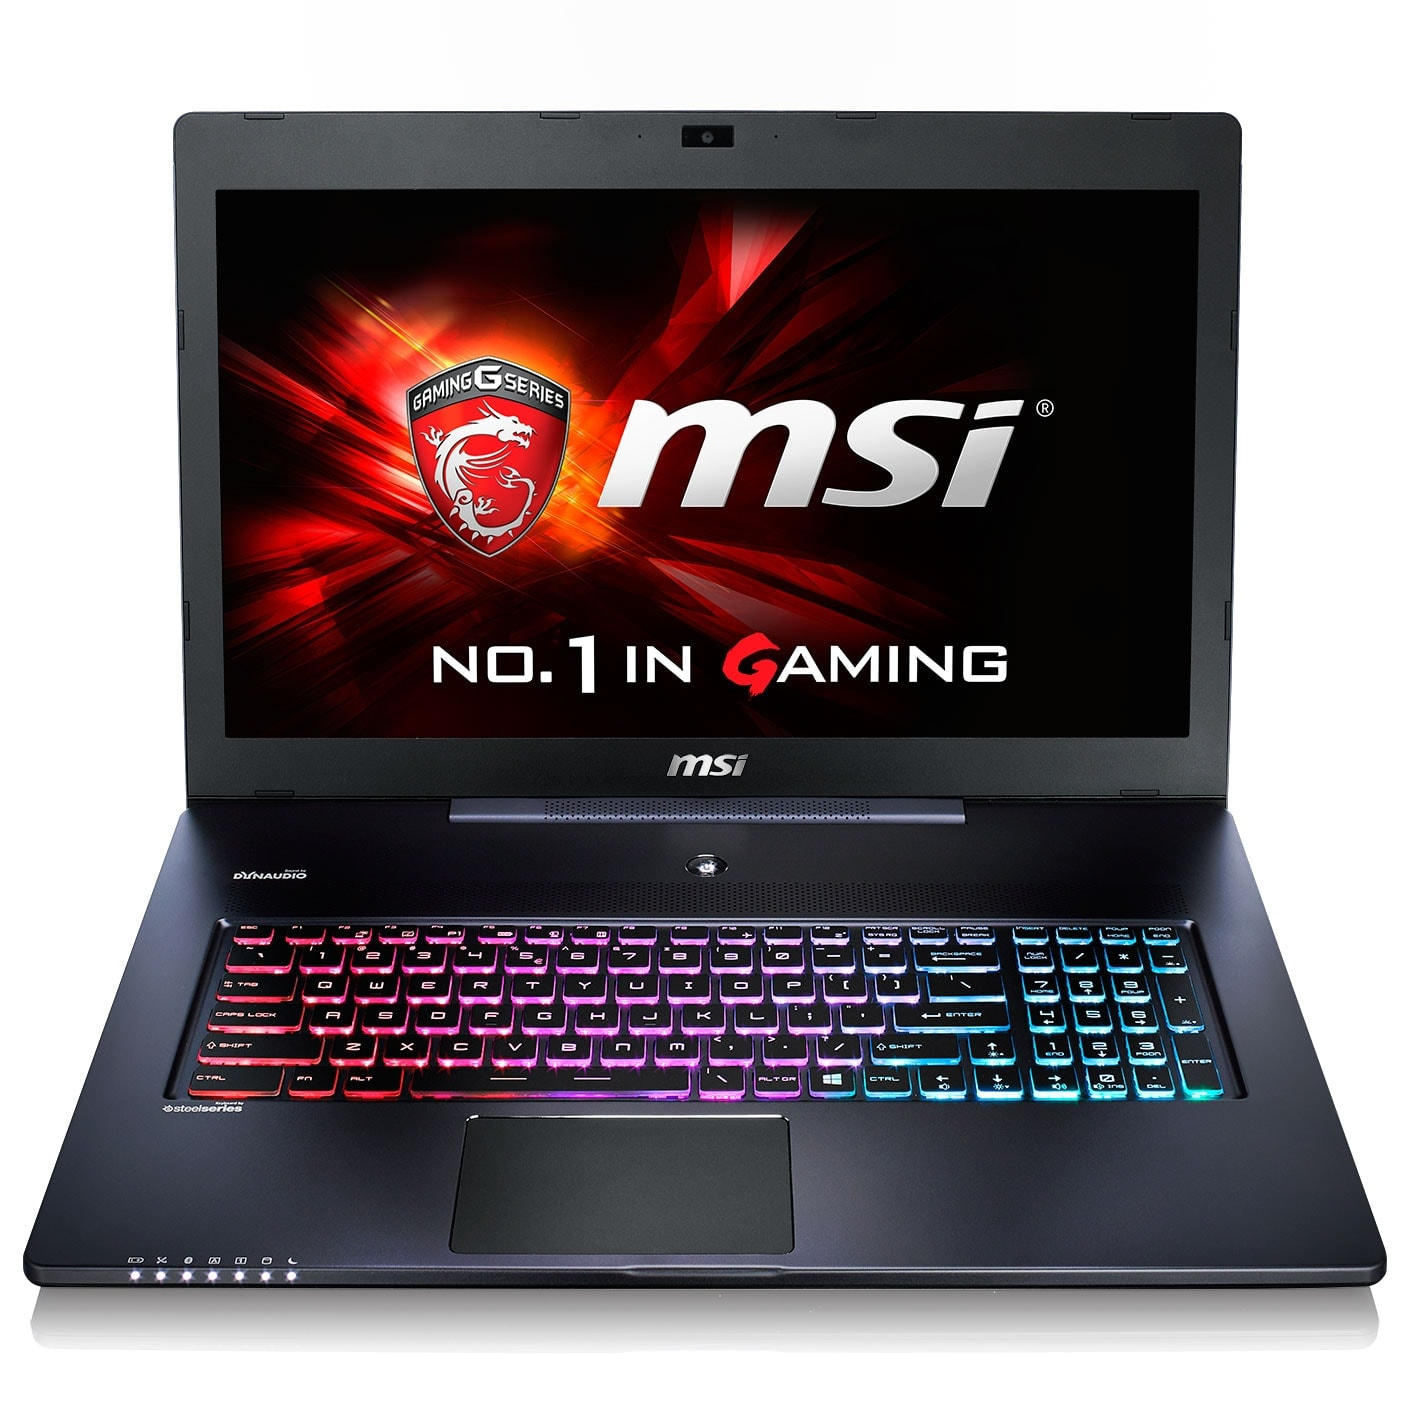 MSI 9S7-177515-093 - PC portable MSI - Cybertek.fr - 1